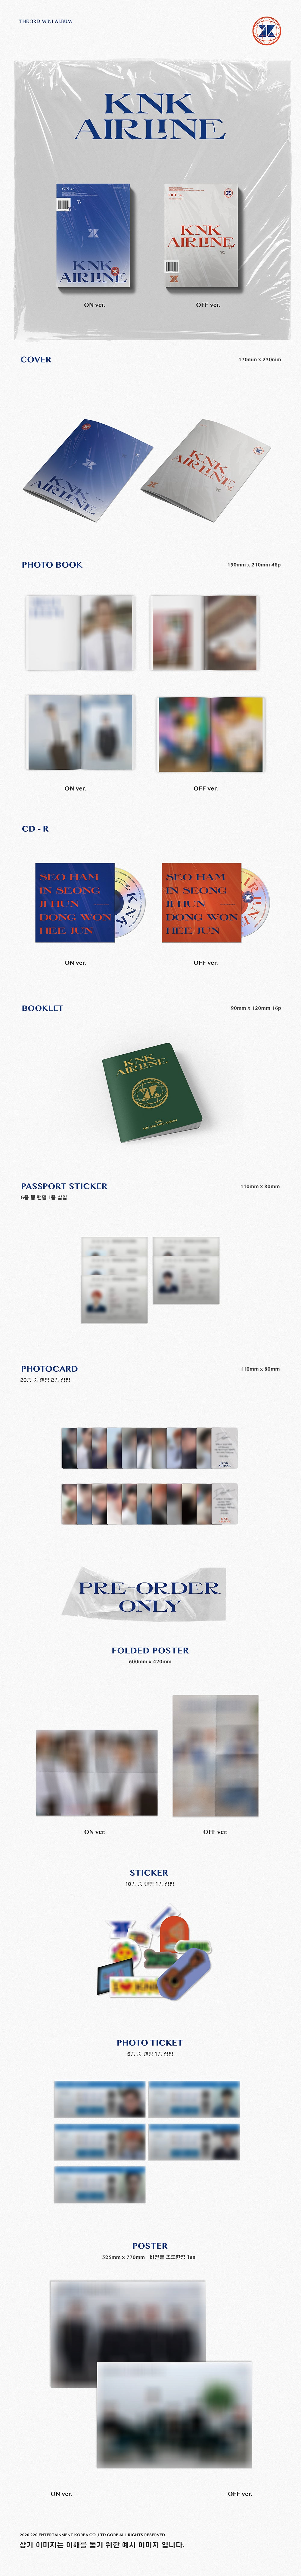 KNK 3rd Mini Album KNK AIRLINE Product Details